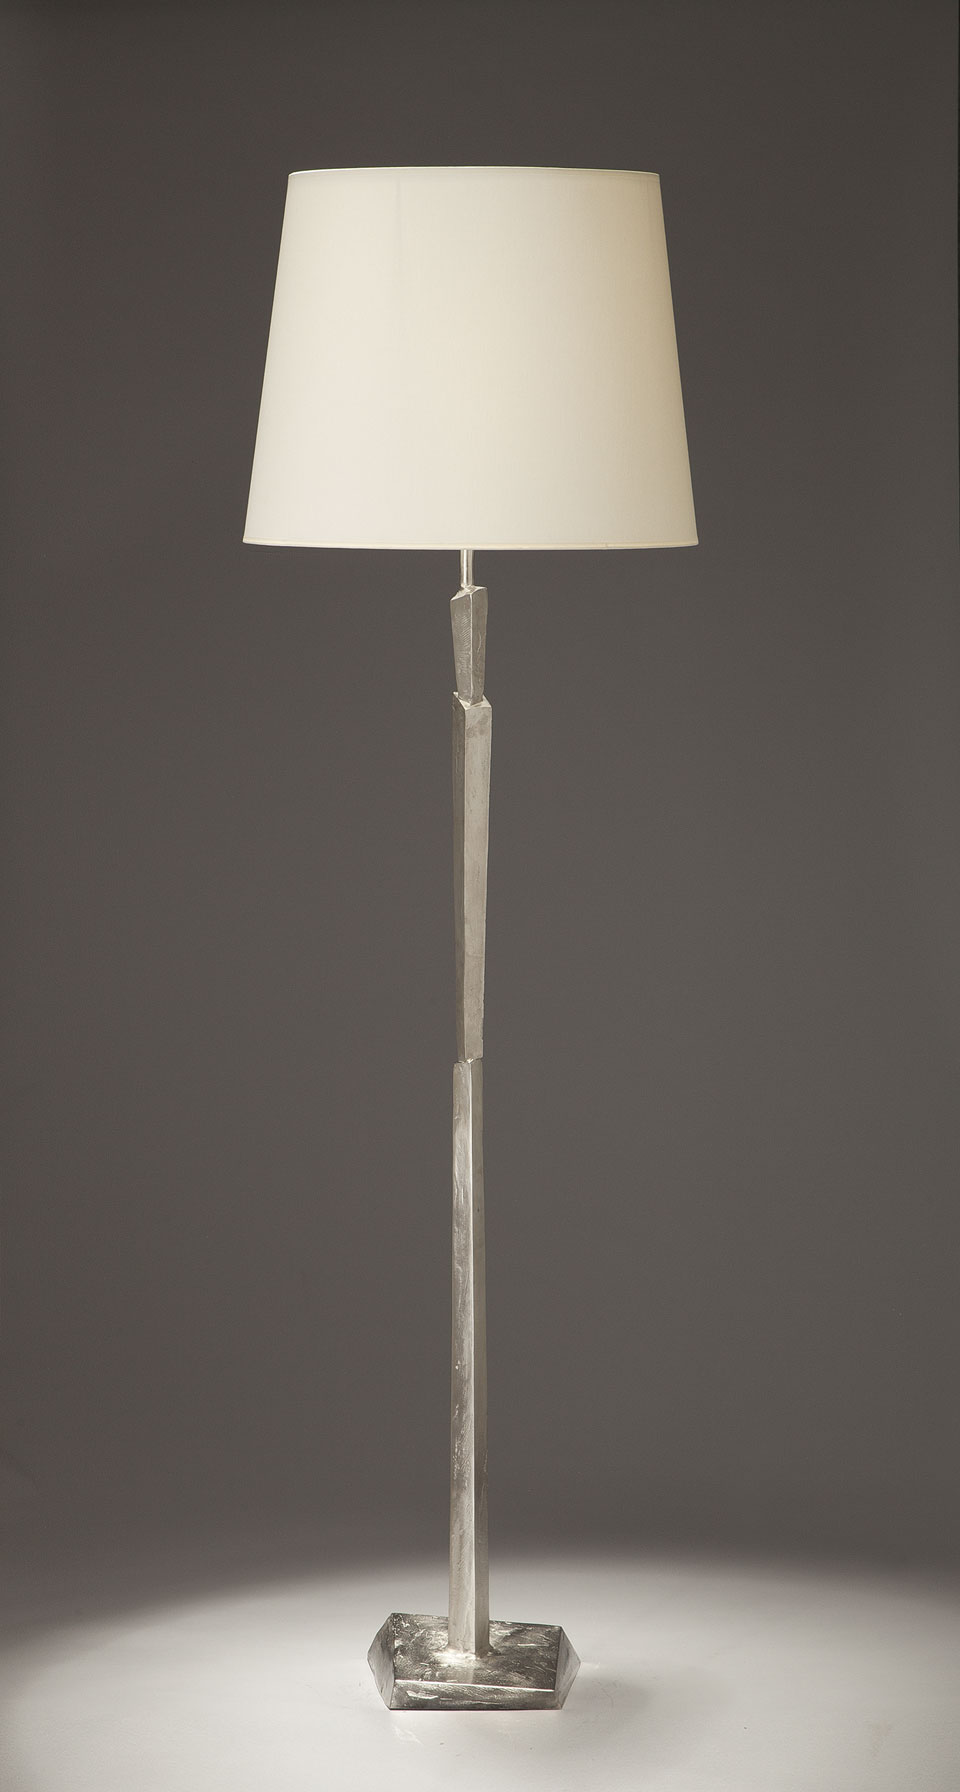 Cubist nickel floor lamp with satin finish and white for Objet insolite lighting